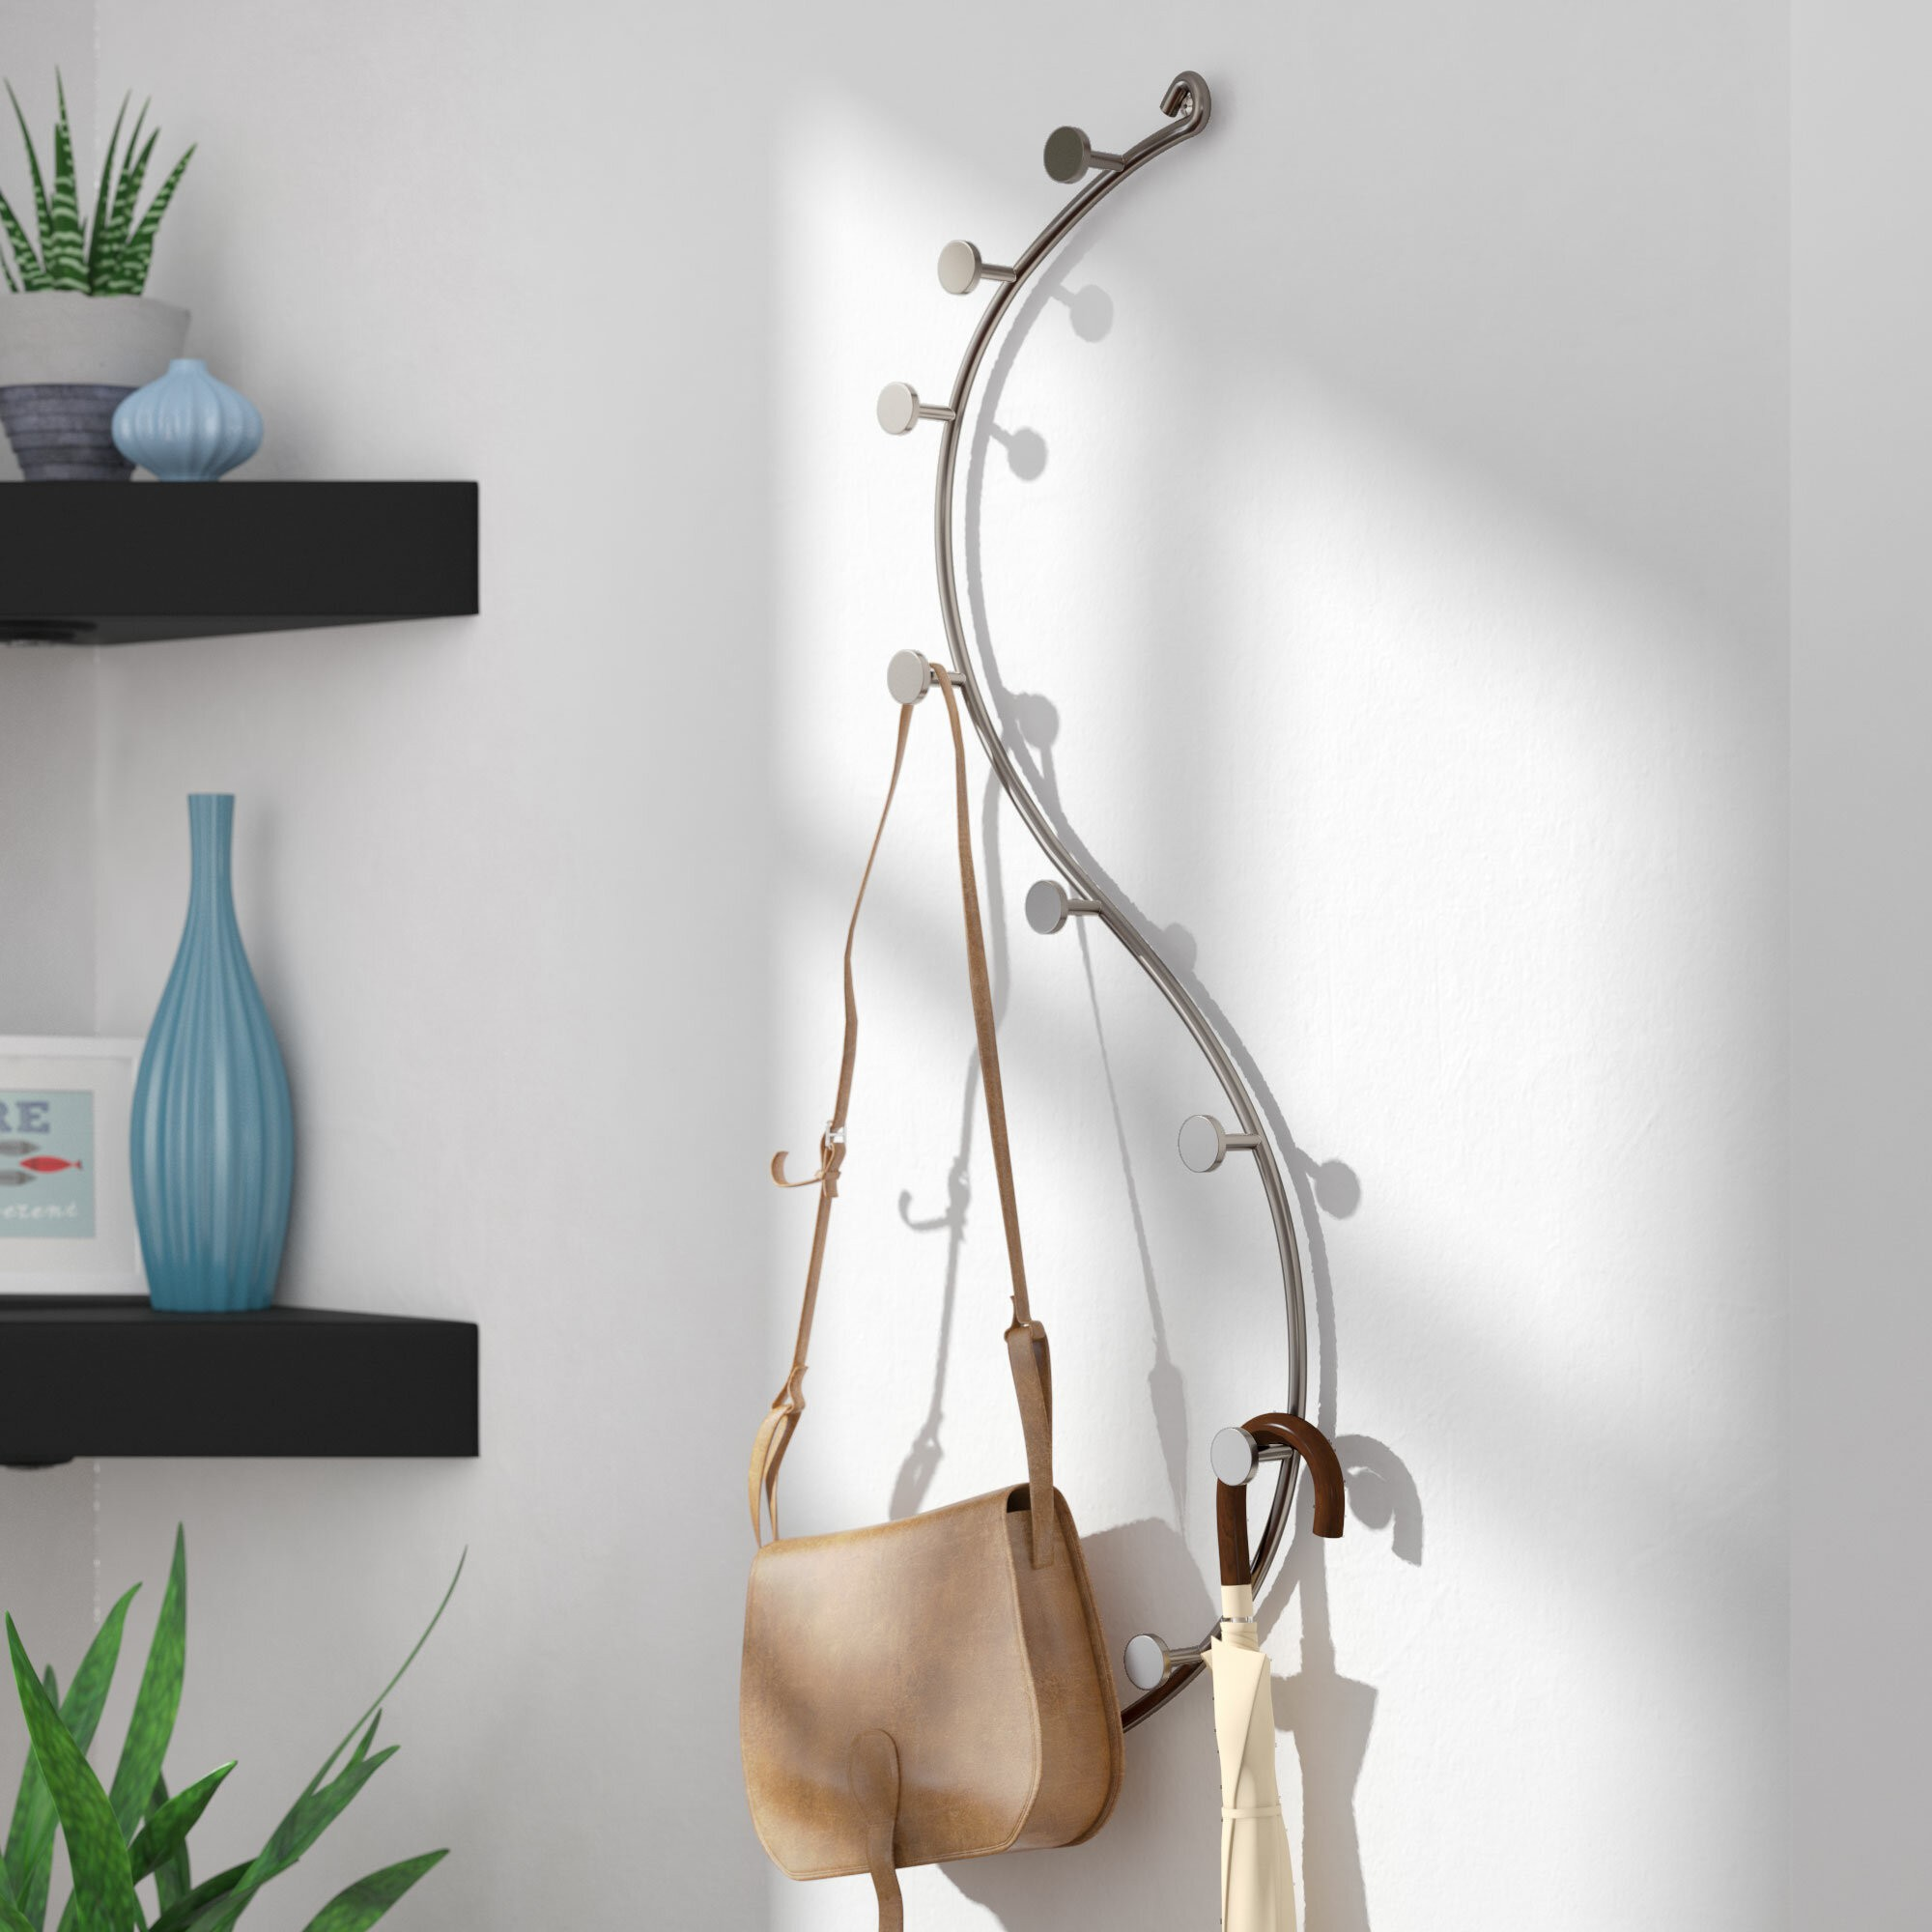 Orozco 9 - Hook Wall Mounted Coat Rack